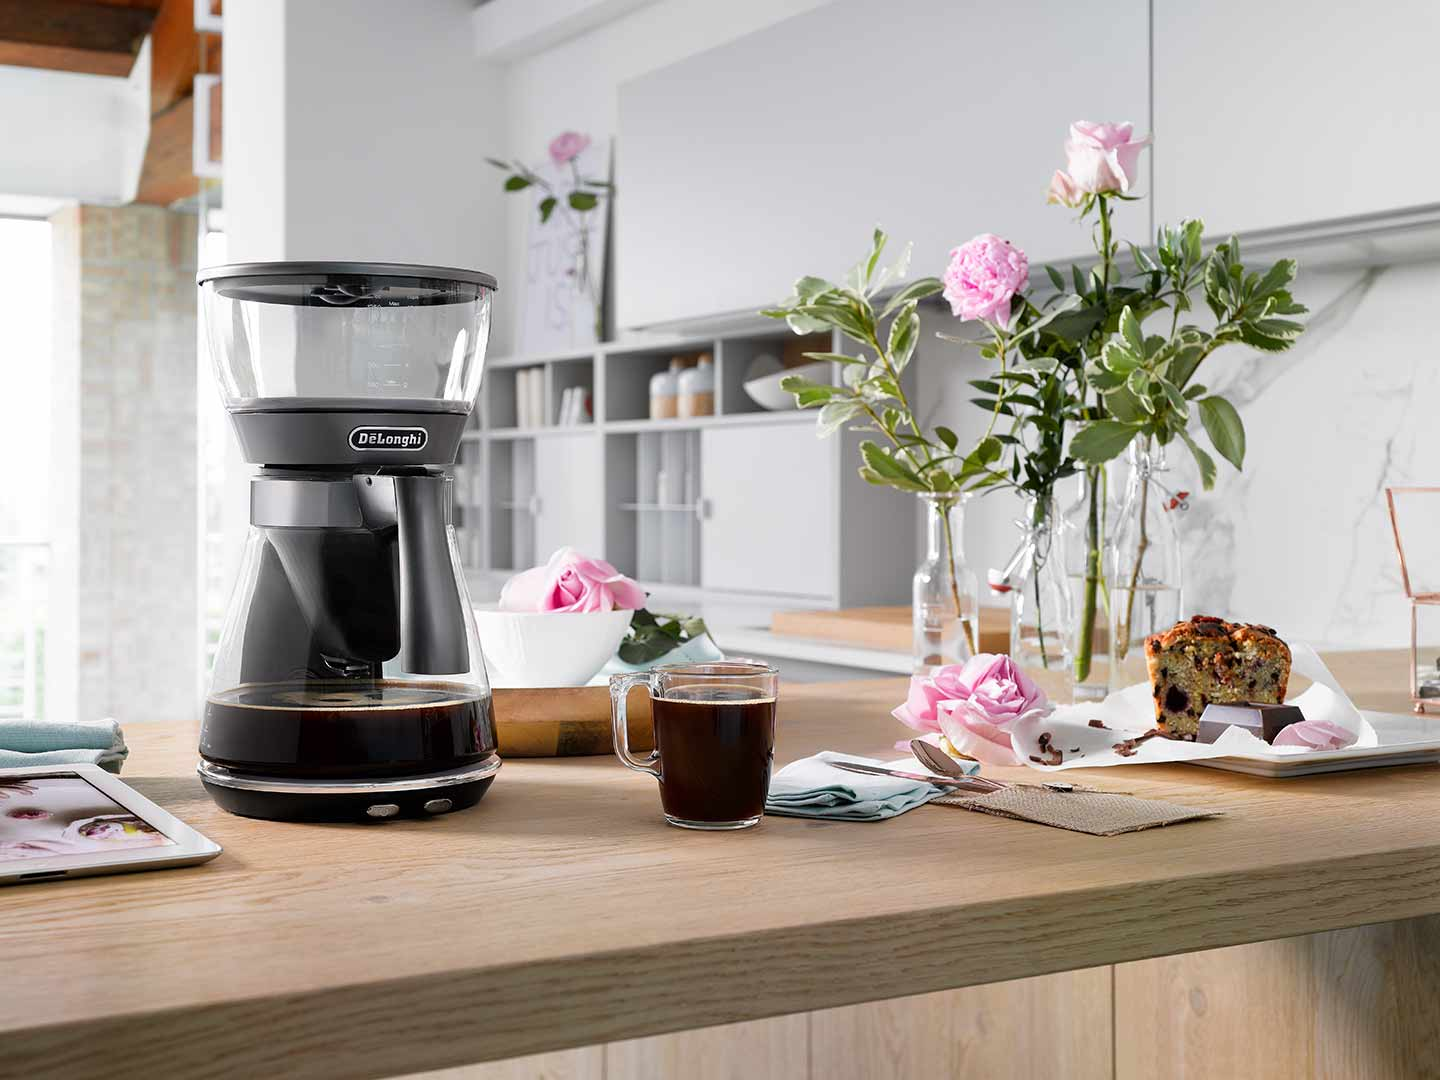 Delonghi ICM17210 Clessidra Drip Coffee Machine